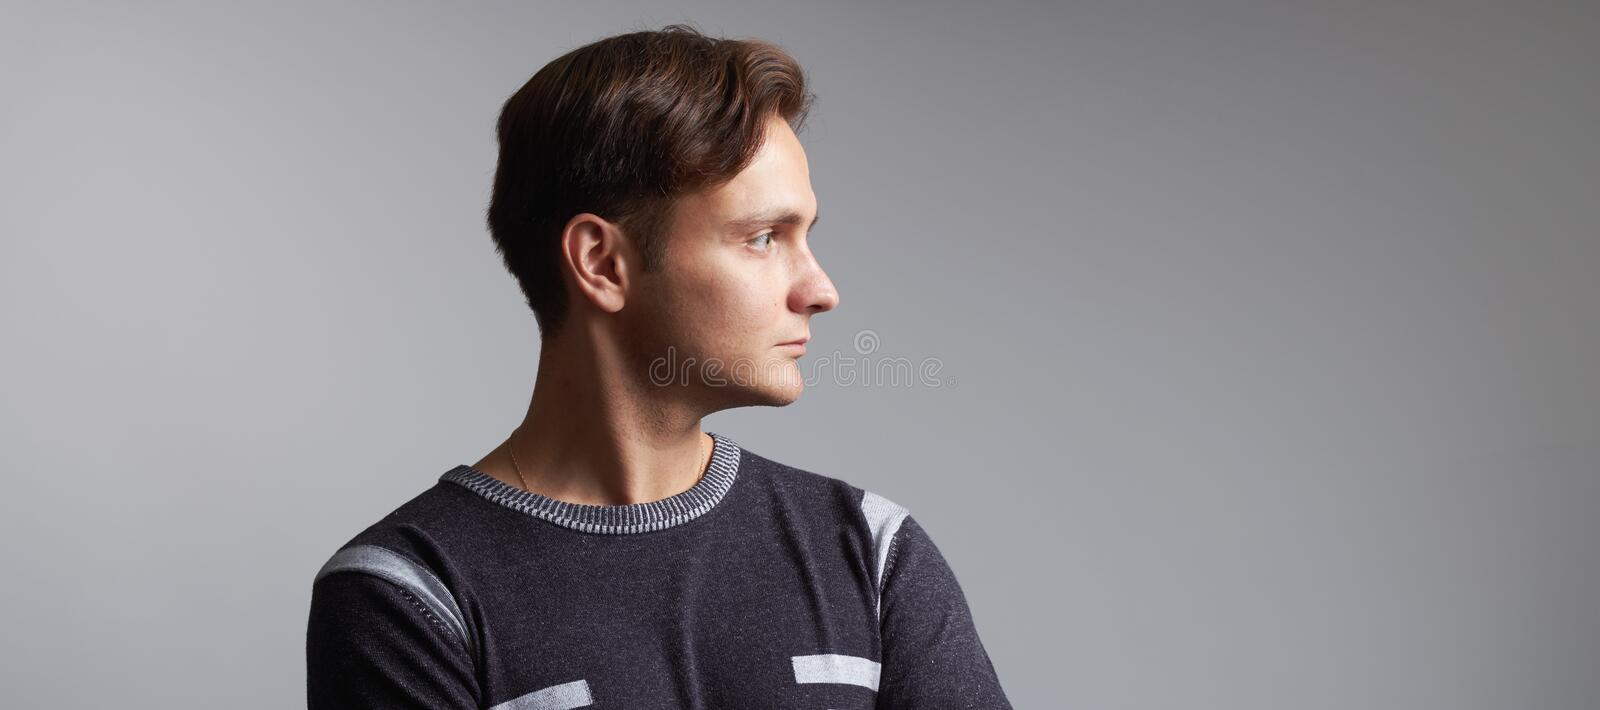 Profile portrait of a handsome man isolated on grey background royalty free stock photo